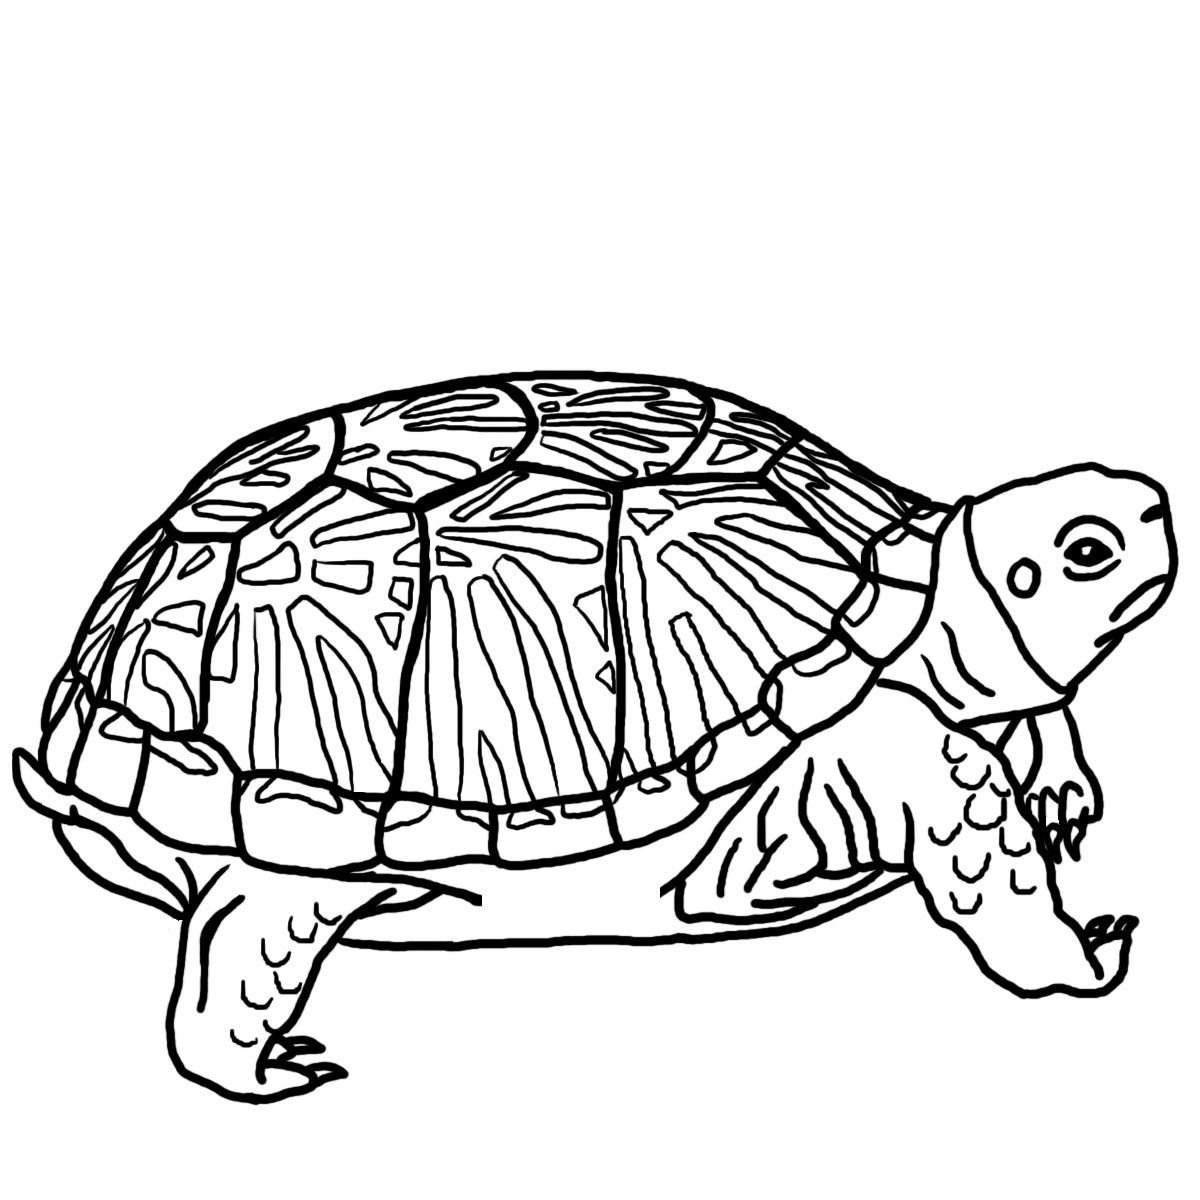 1200x1200 Free Printable Turtle Coloring Pages For Kids Tortuga, Tierra Y